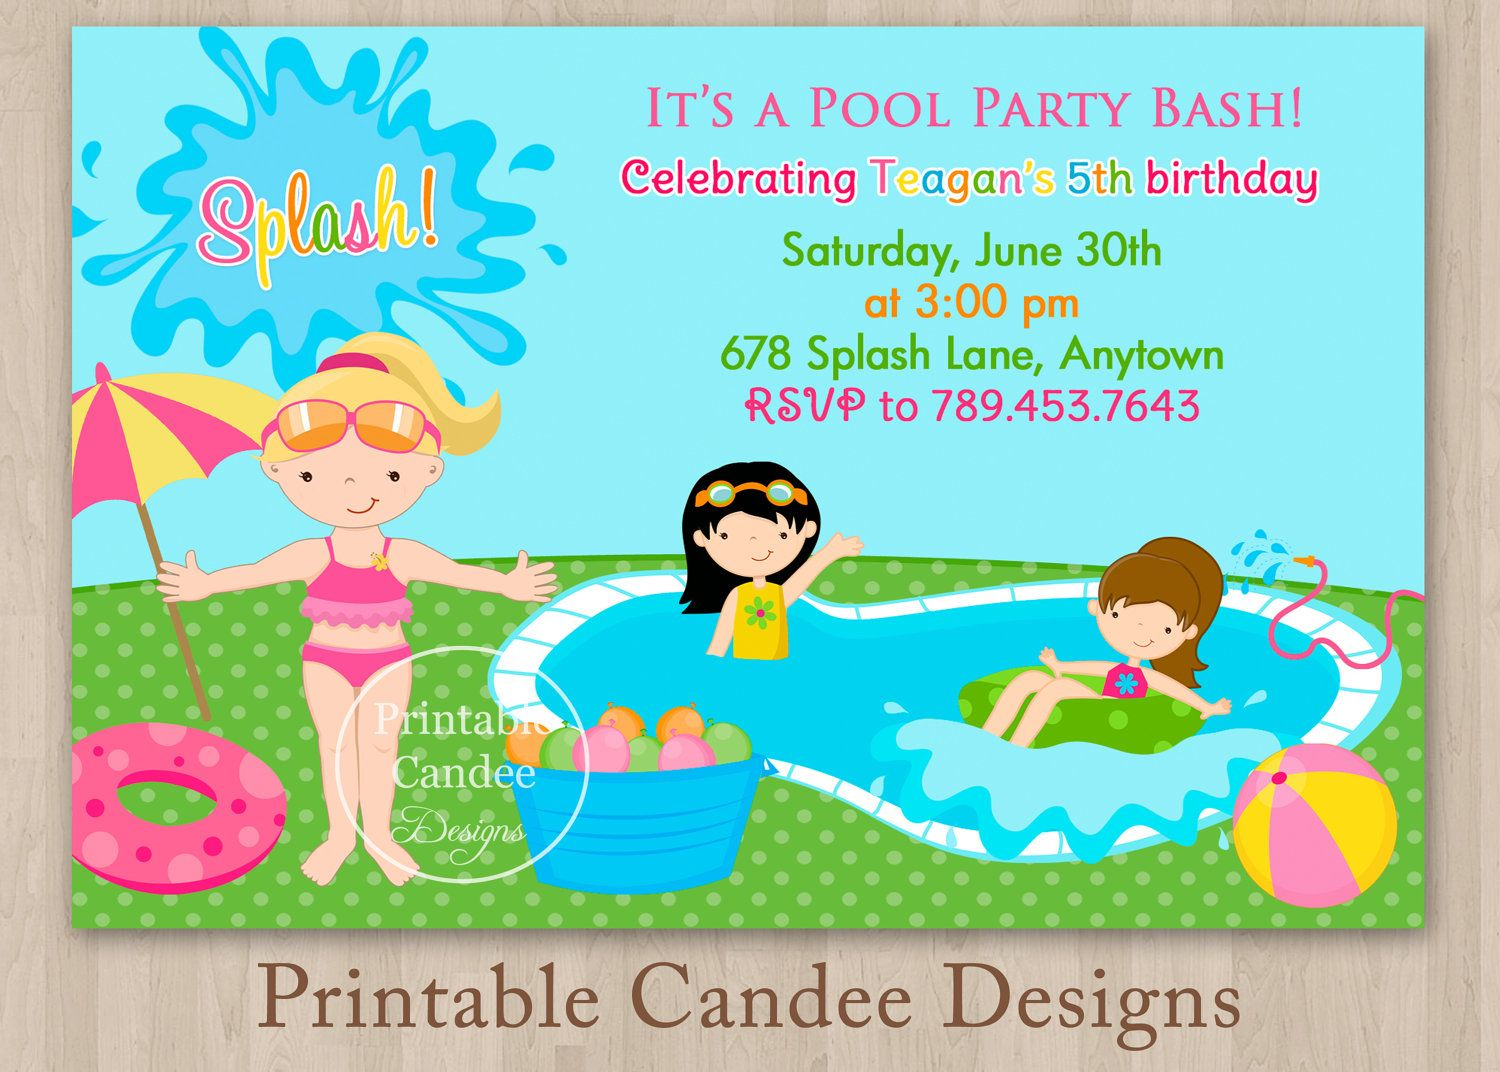 Pool Party Invitations For Kids Free Printable – Printable Kids Birthday Party Invitations